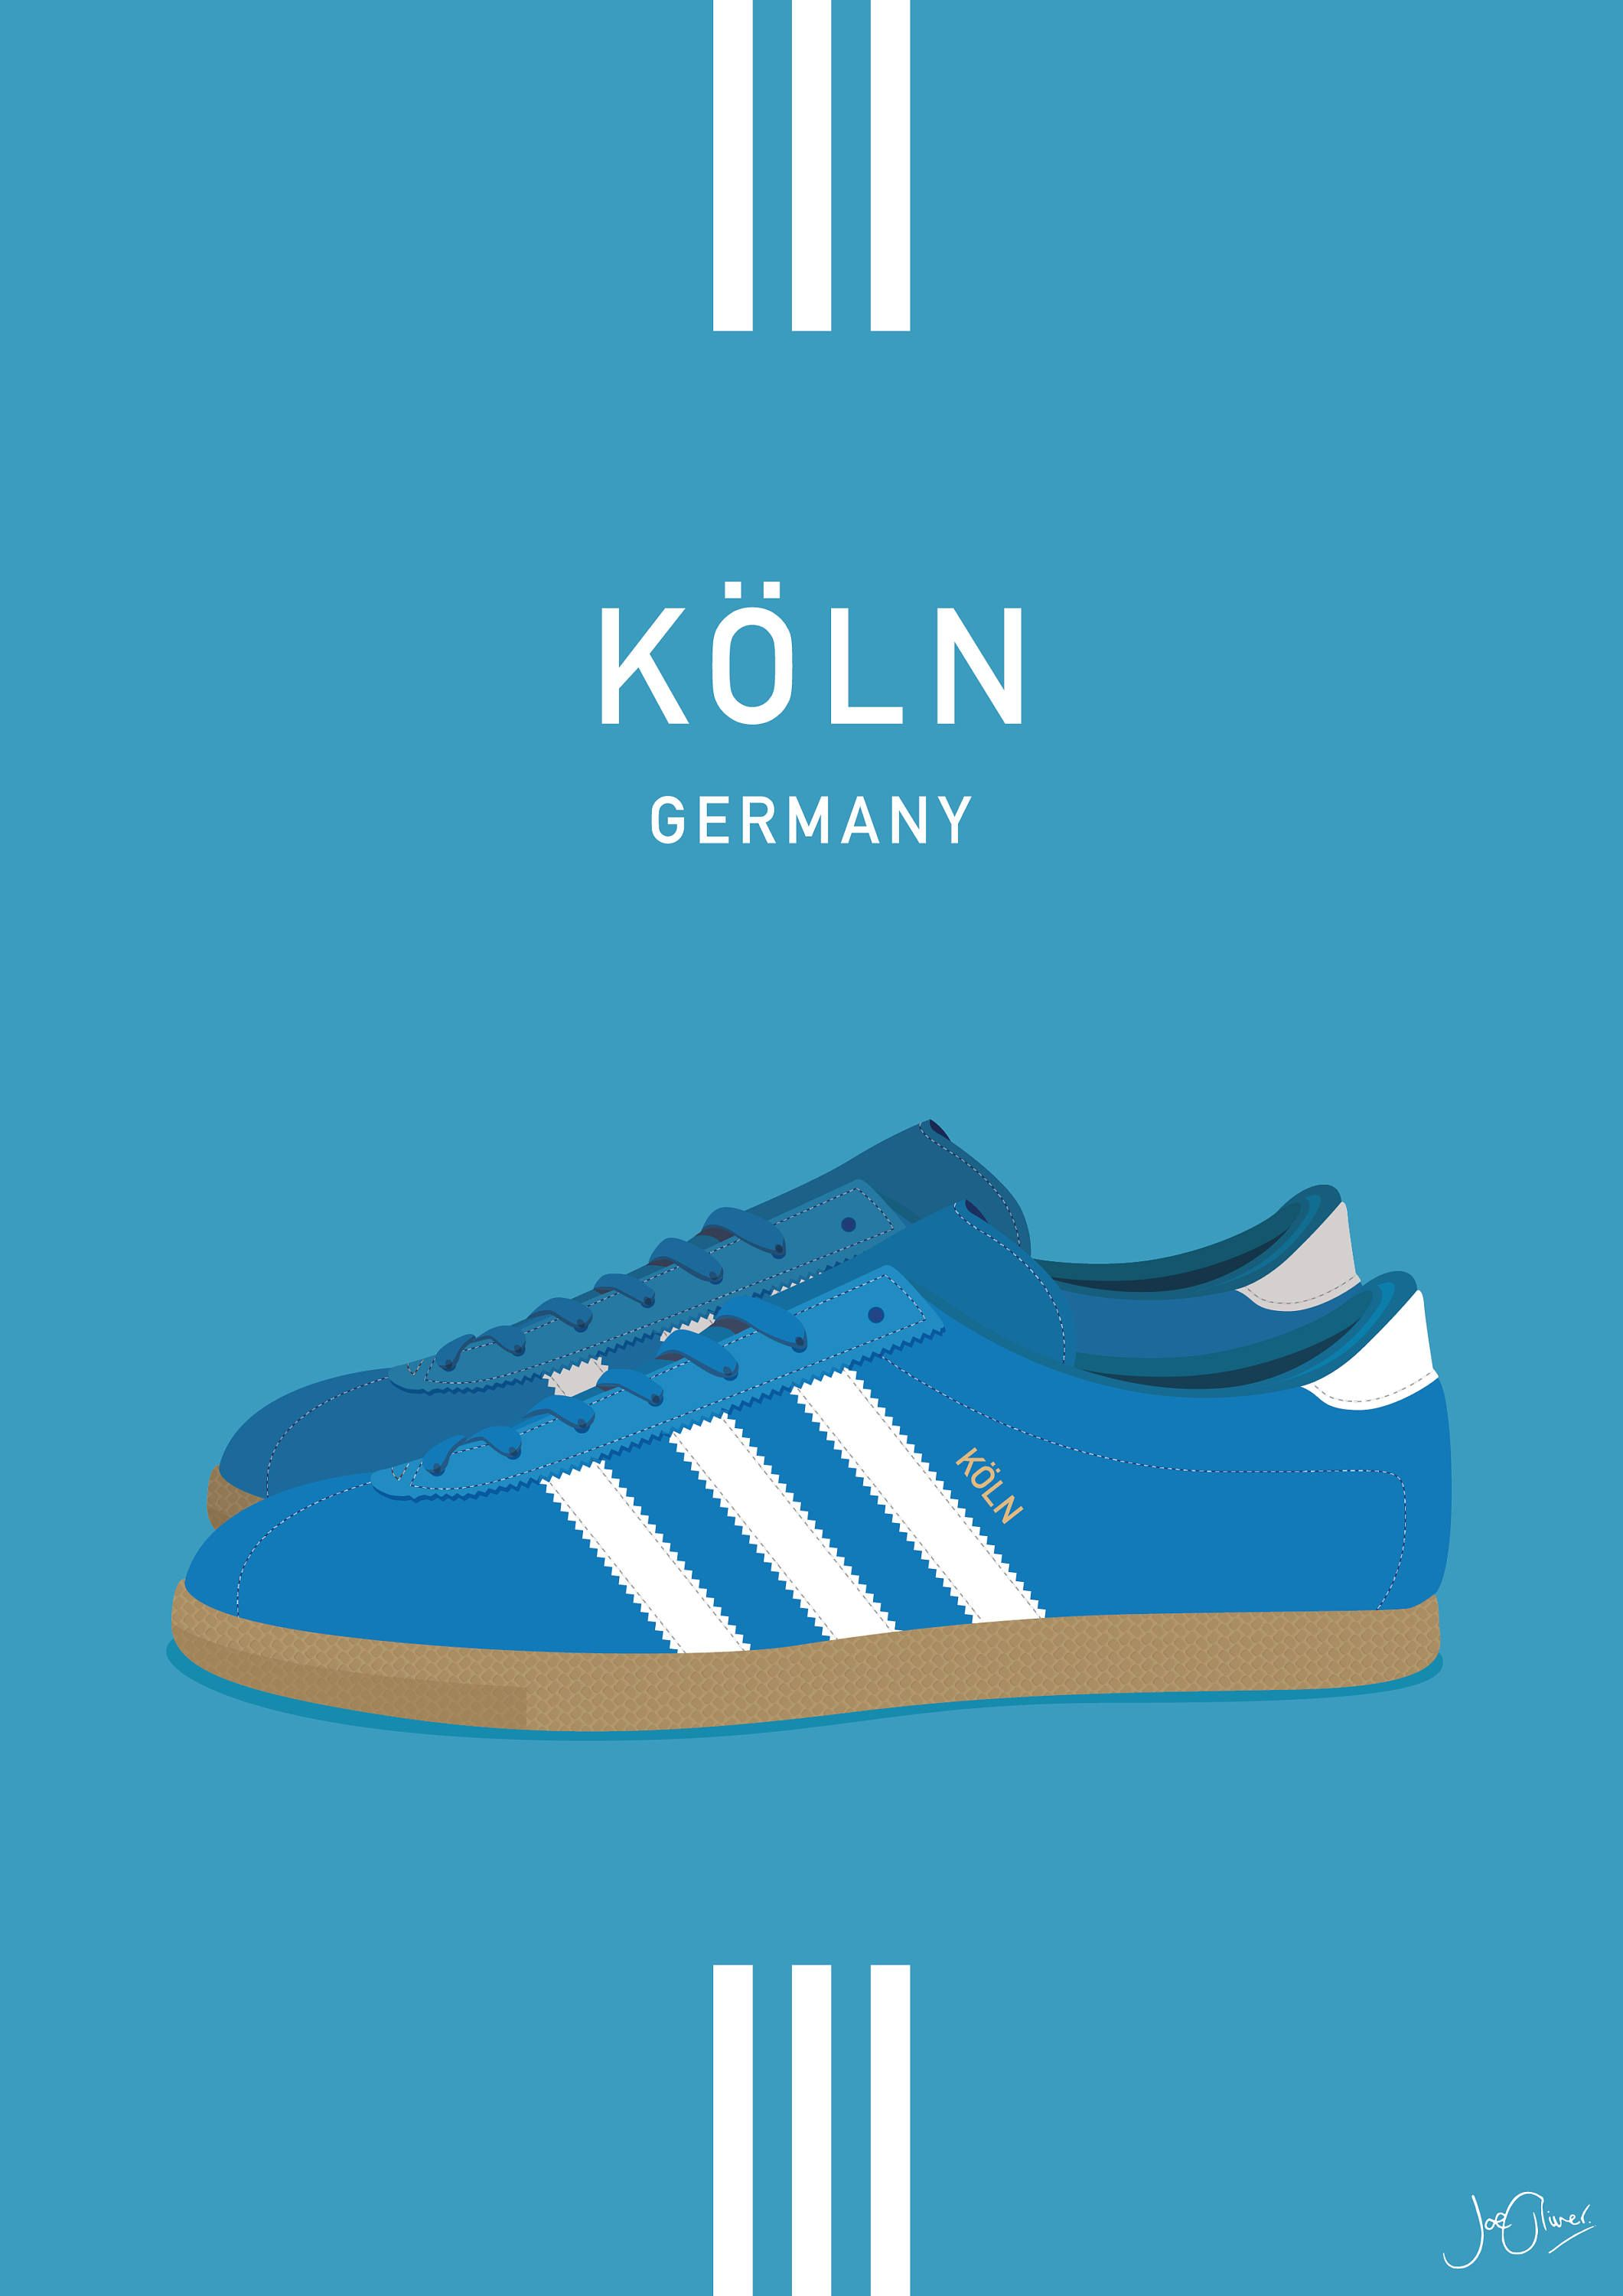 Adidas Originals Koln Illustrated Poster Print A6 A5 A4 A3